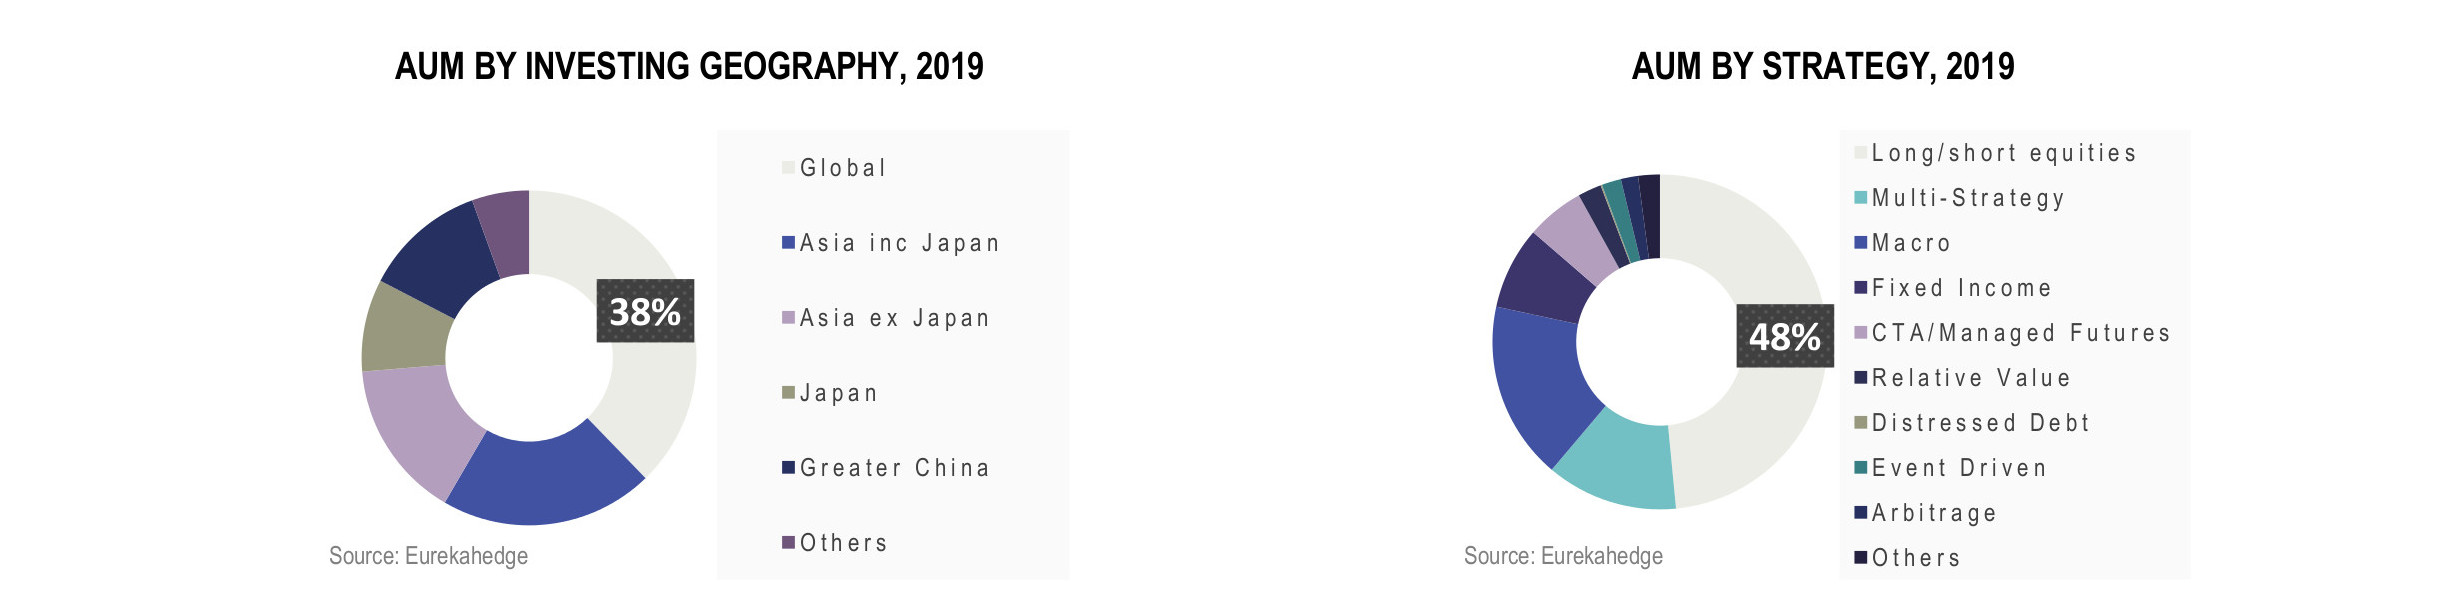 Asian Hedge Funds Infographic September 2019 - AUM by investing geography and AUM by strategy 2019